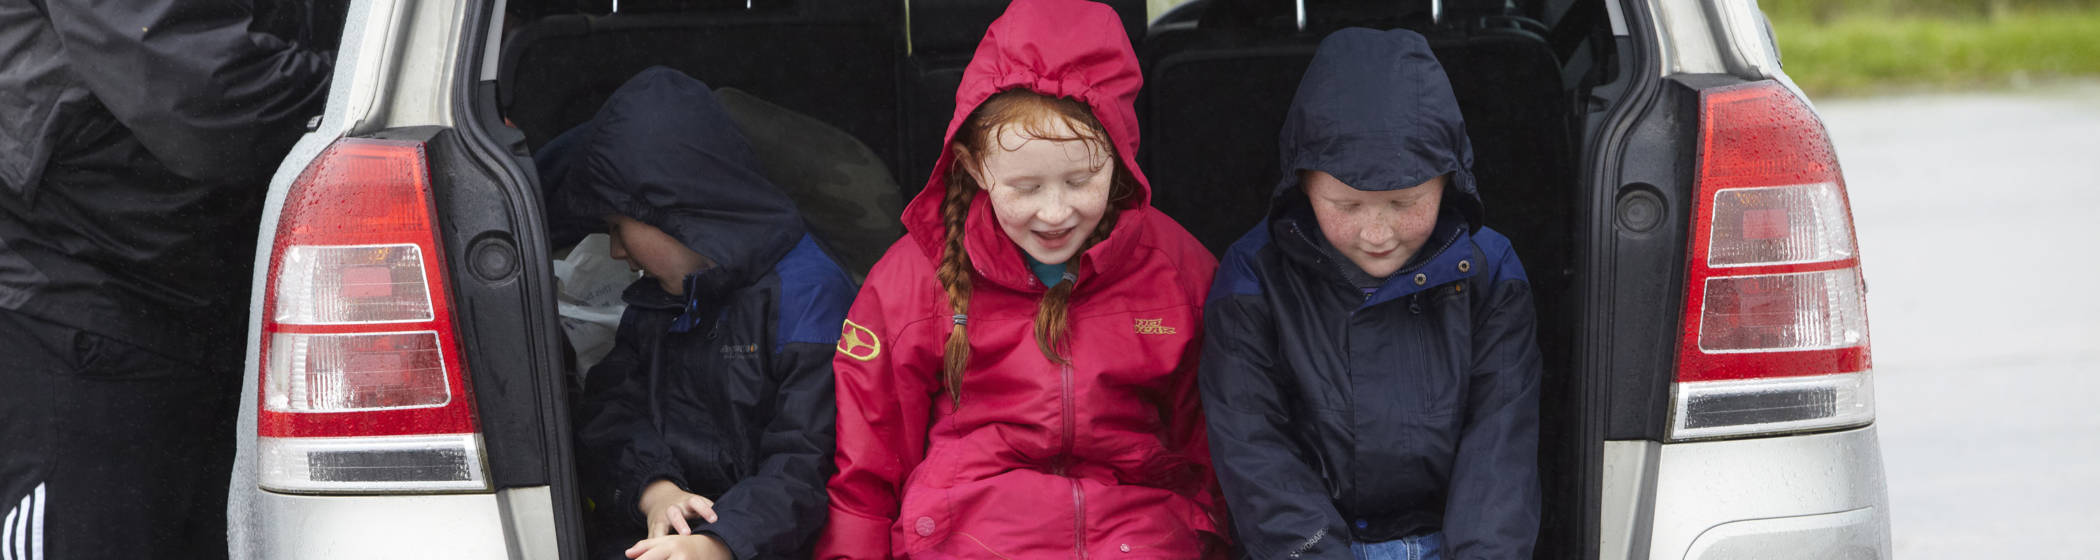 children in the back of a car sheltering from the rain